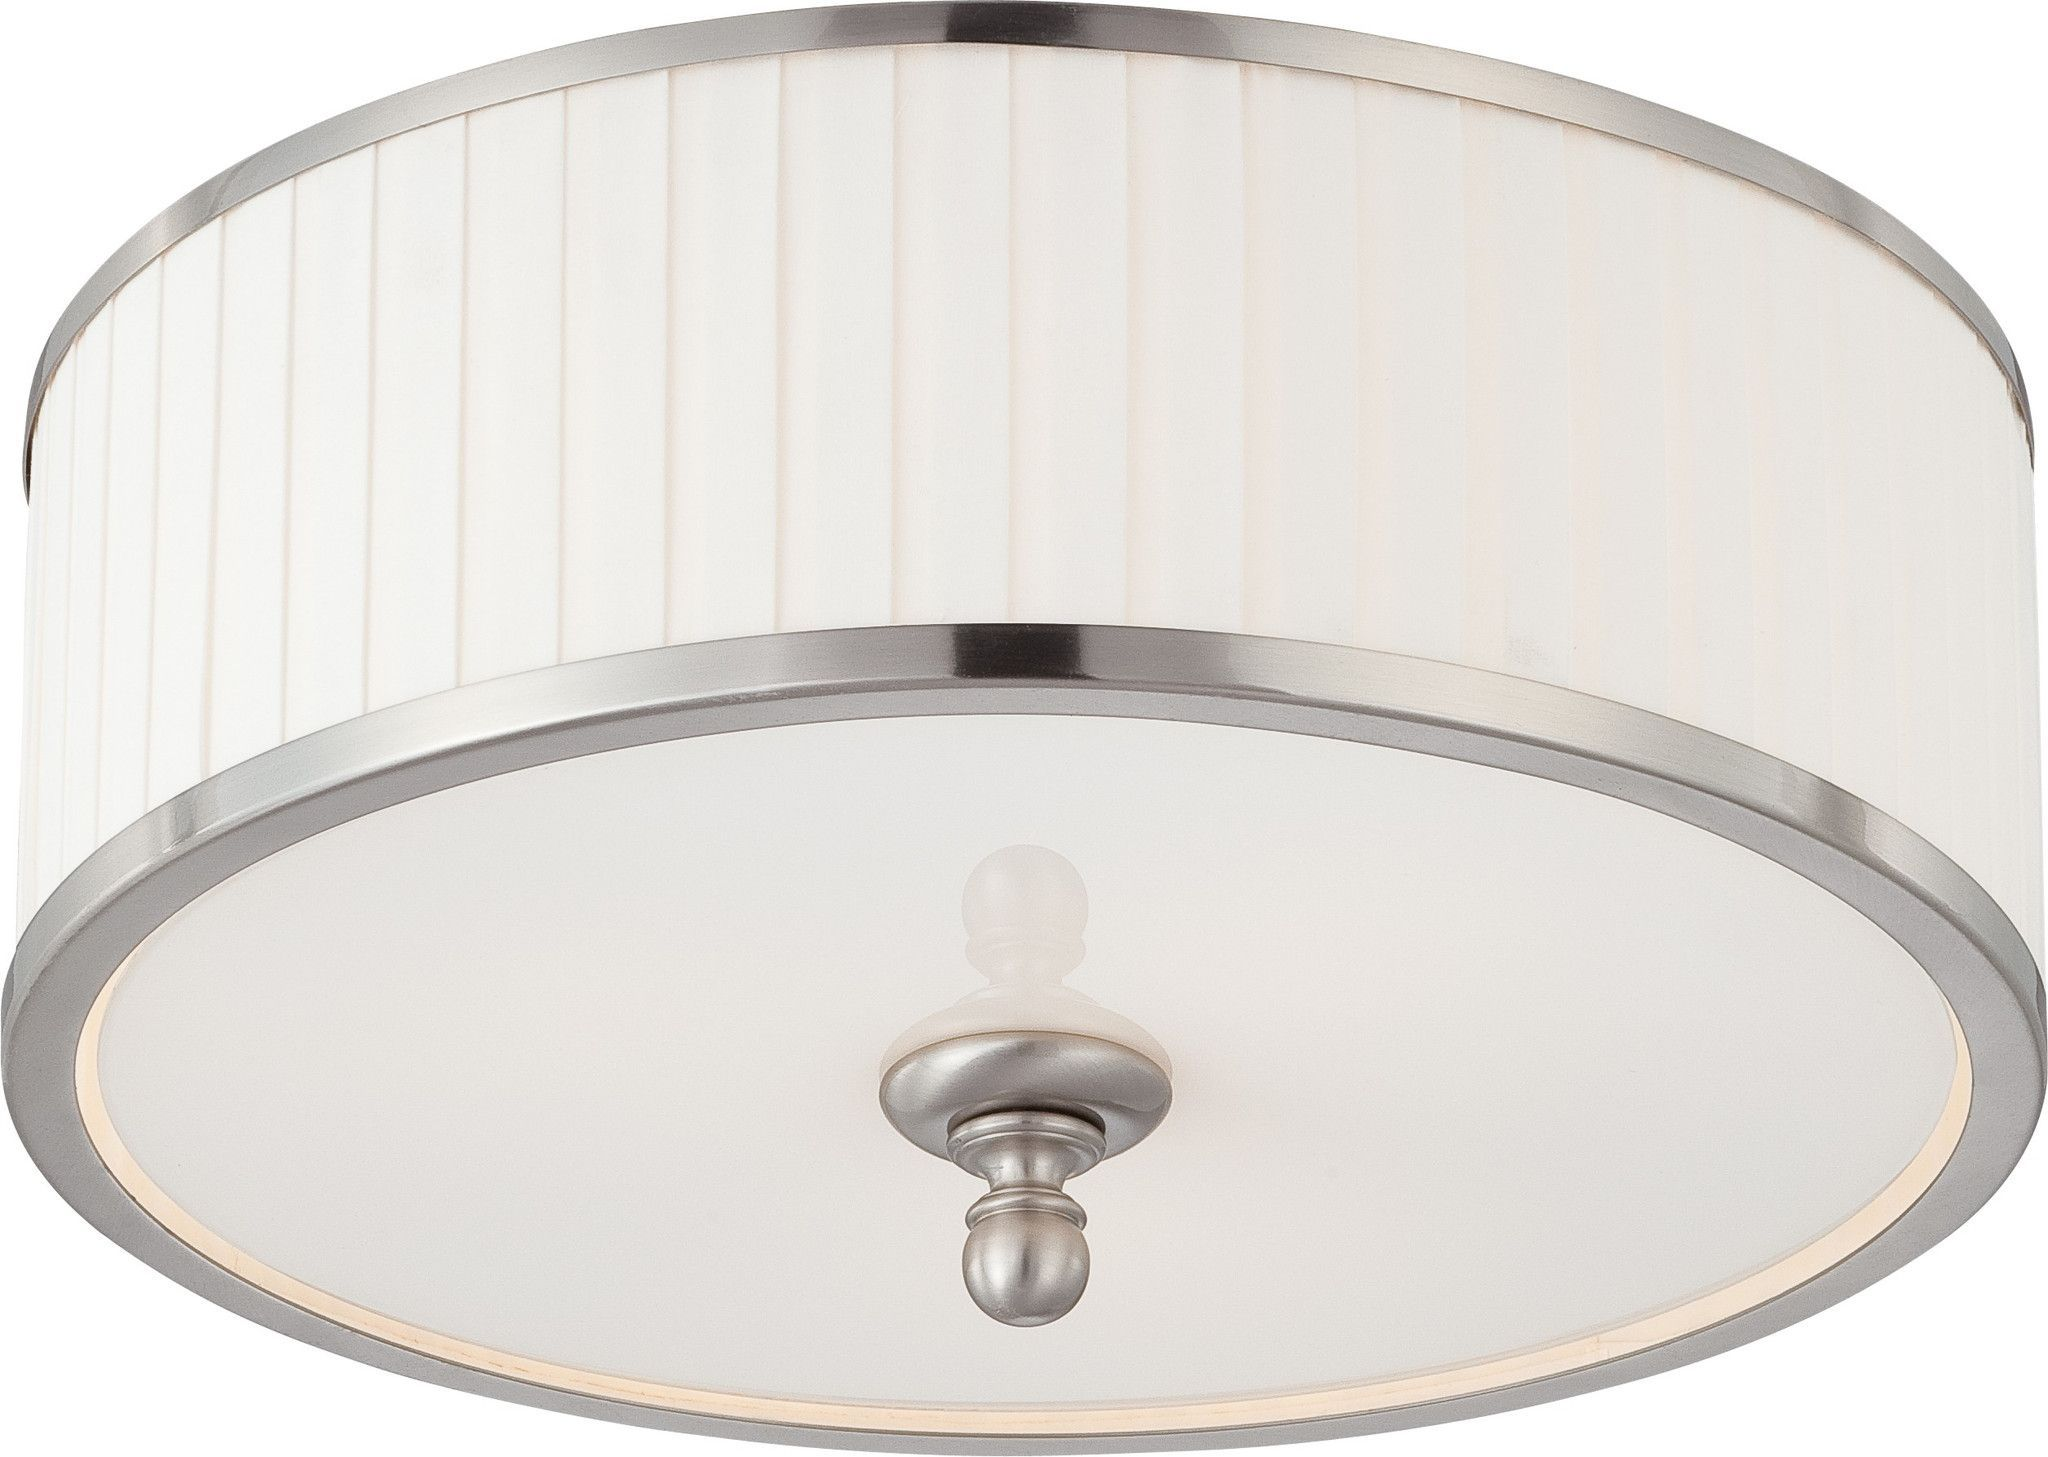 Dome flush mount lighting fixture in brushed nickel finish nickel dome flush mount lighting fixture in brushed nickel finish arubaitofo Choice Image